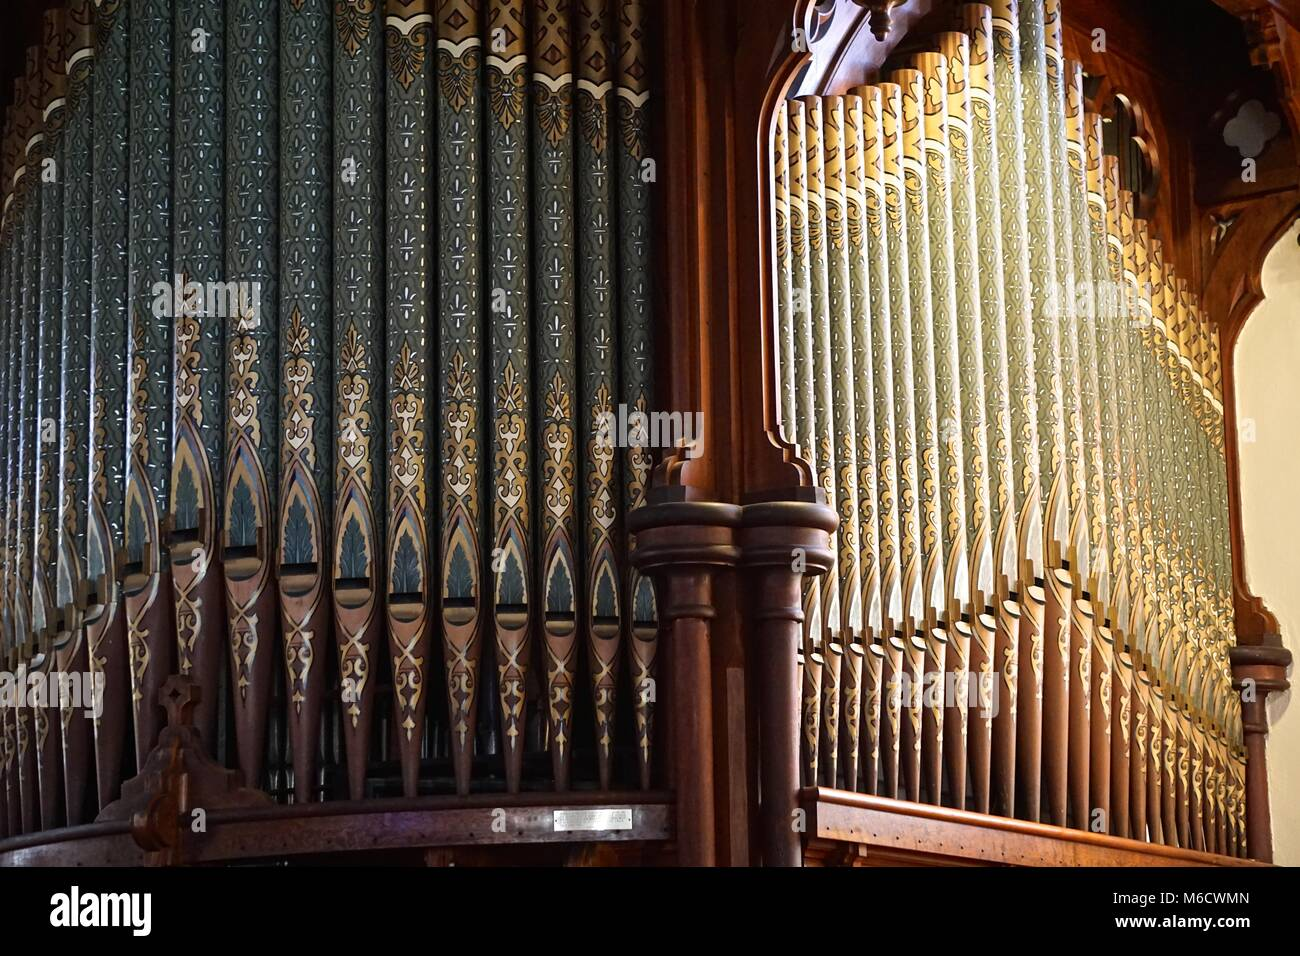 Intricate designs on the organ pipes in St. Peter's Episcopal Church, in Fernandina Beach, on Amelia Island, Florida. - Stock Image